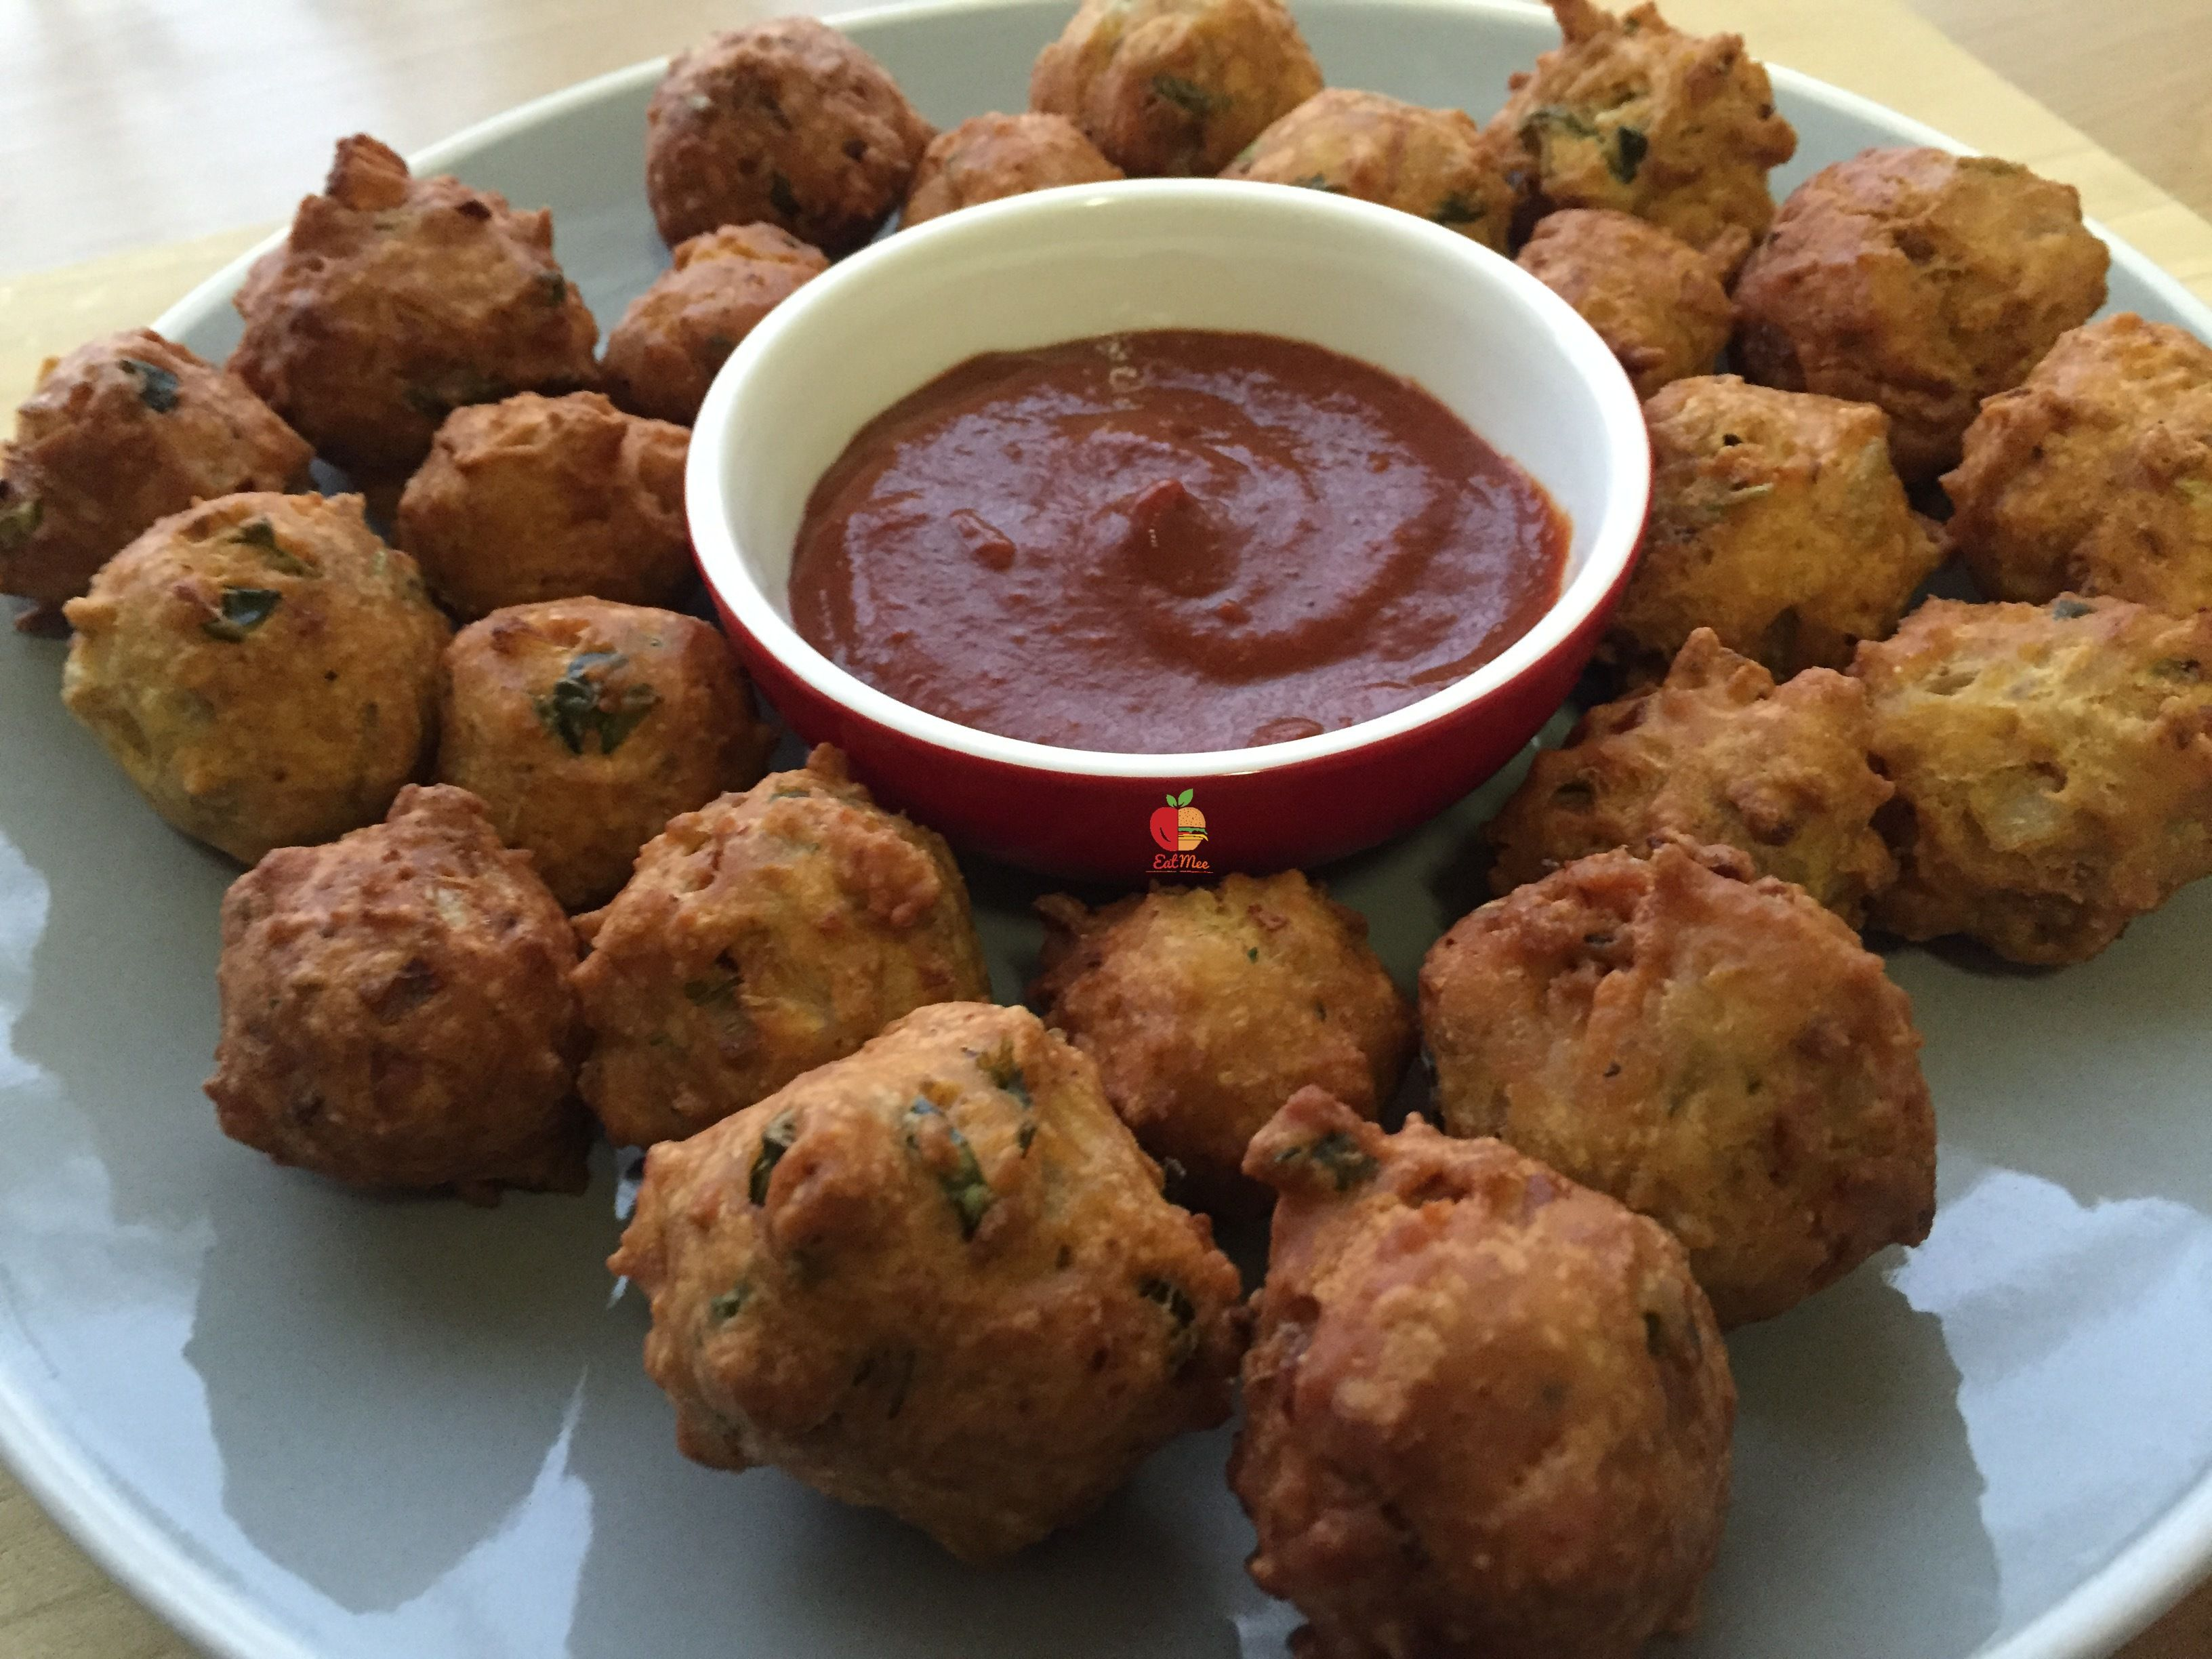 Bhajia chilli bites recipes to cook pinterest indian cuisine bhajia chilli bites is a fiery indian nibble or entree dish like a fritter with a few variations forumfinder Image collections